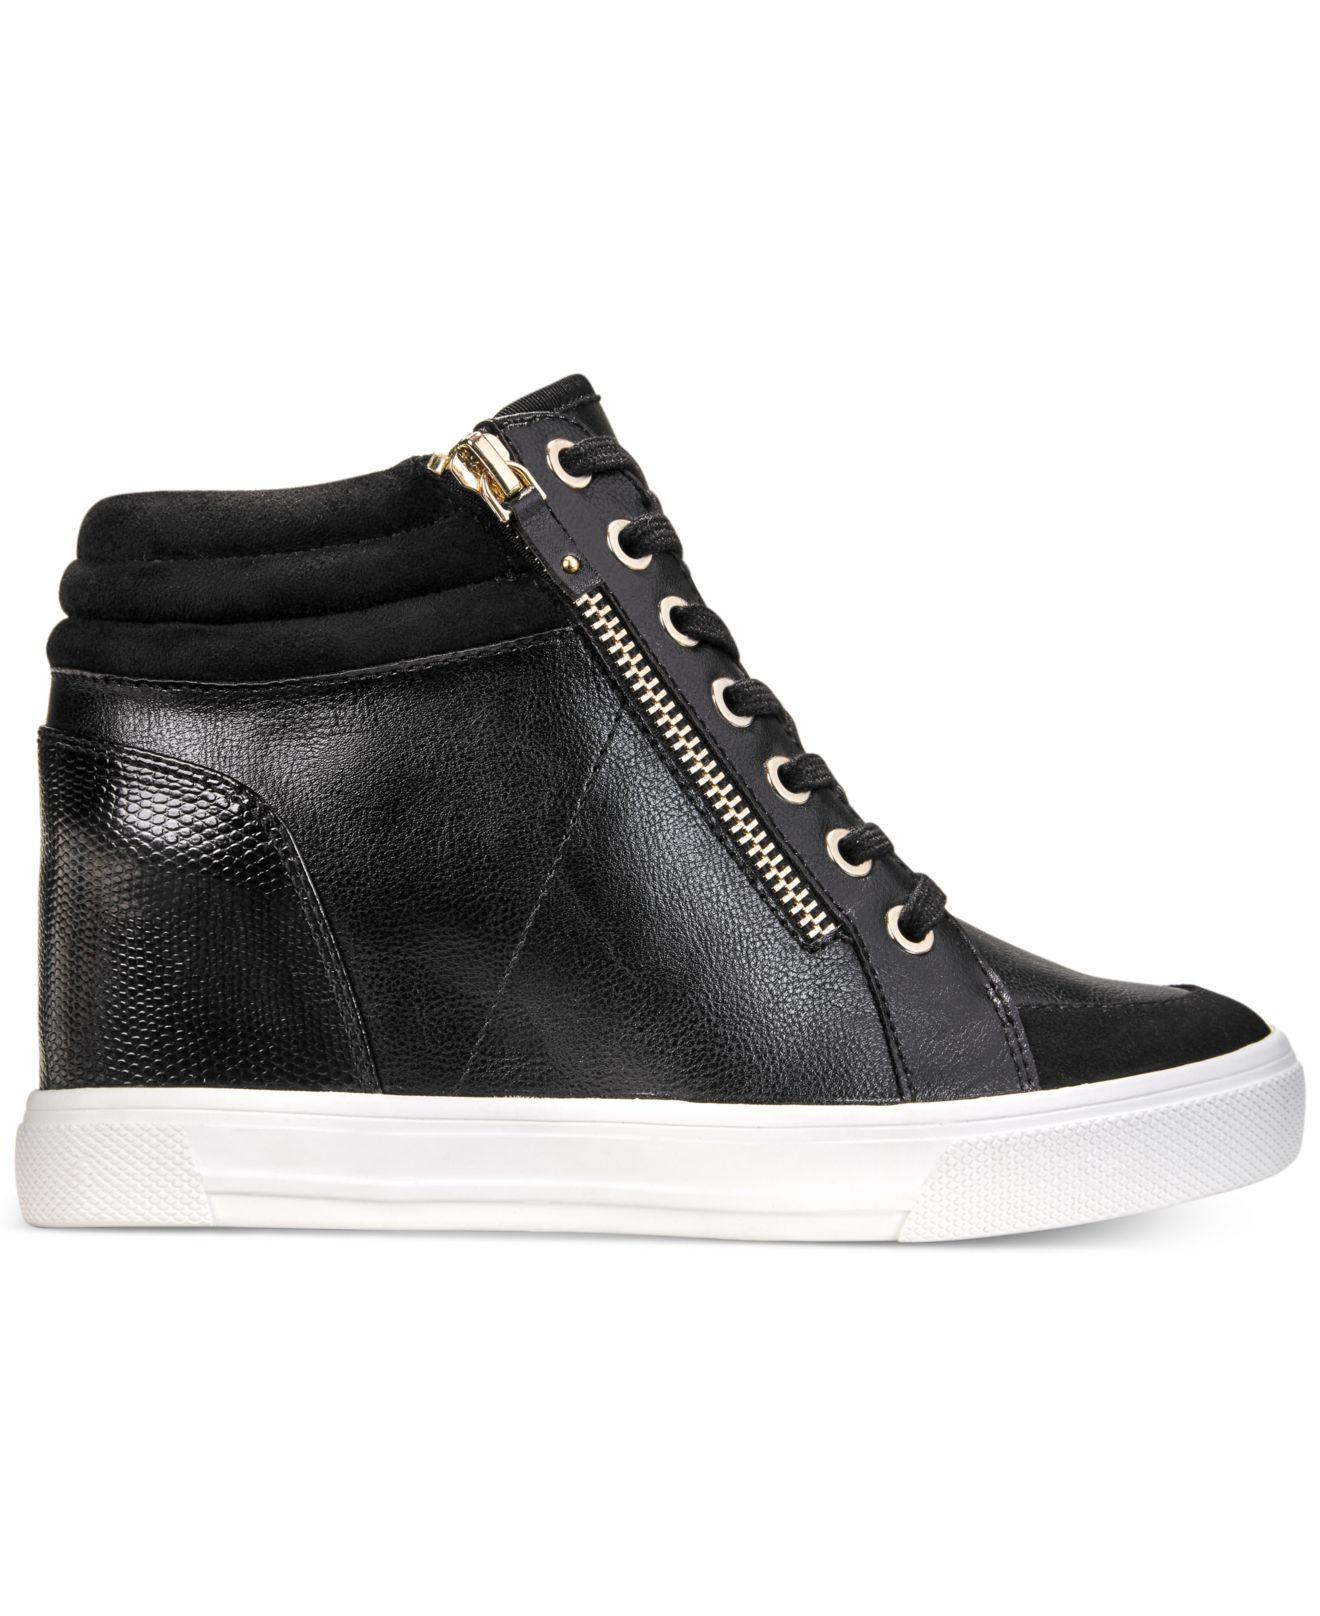 4ec5770ce66b Lyst - ALDO Kaia Lace-up Wedge Sneakers in Black